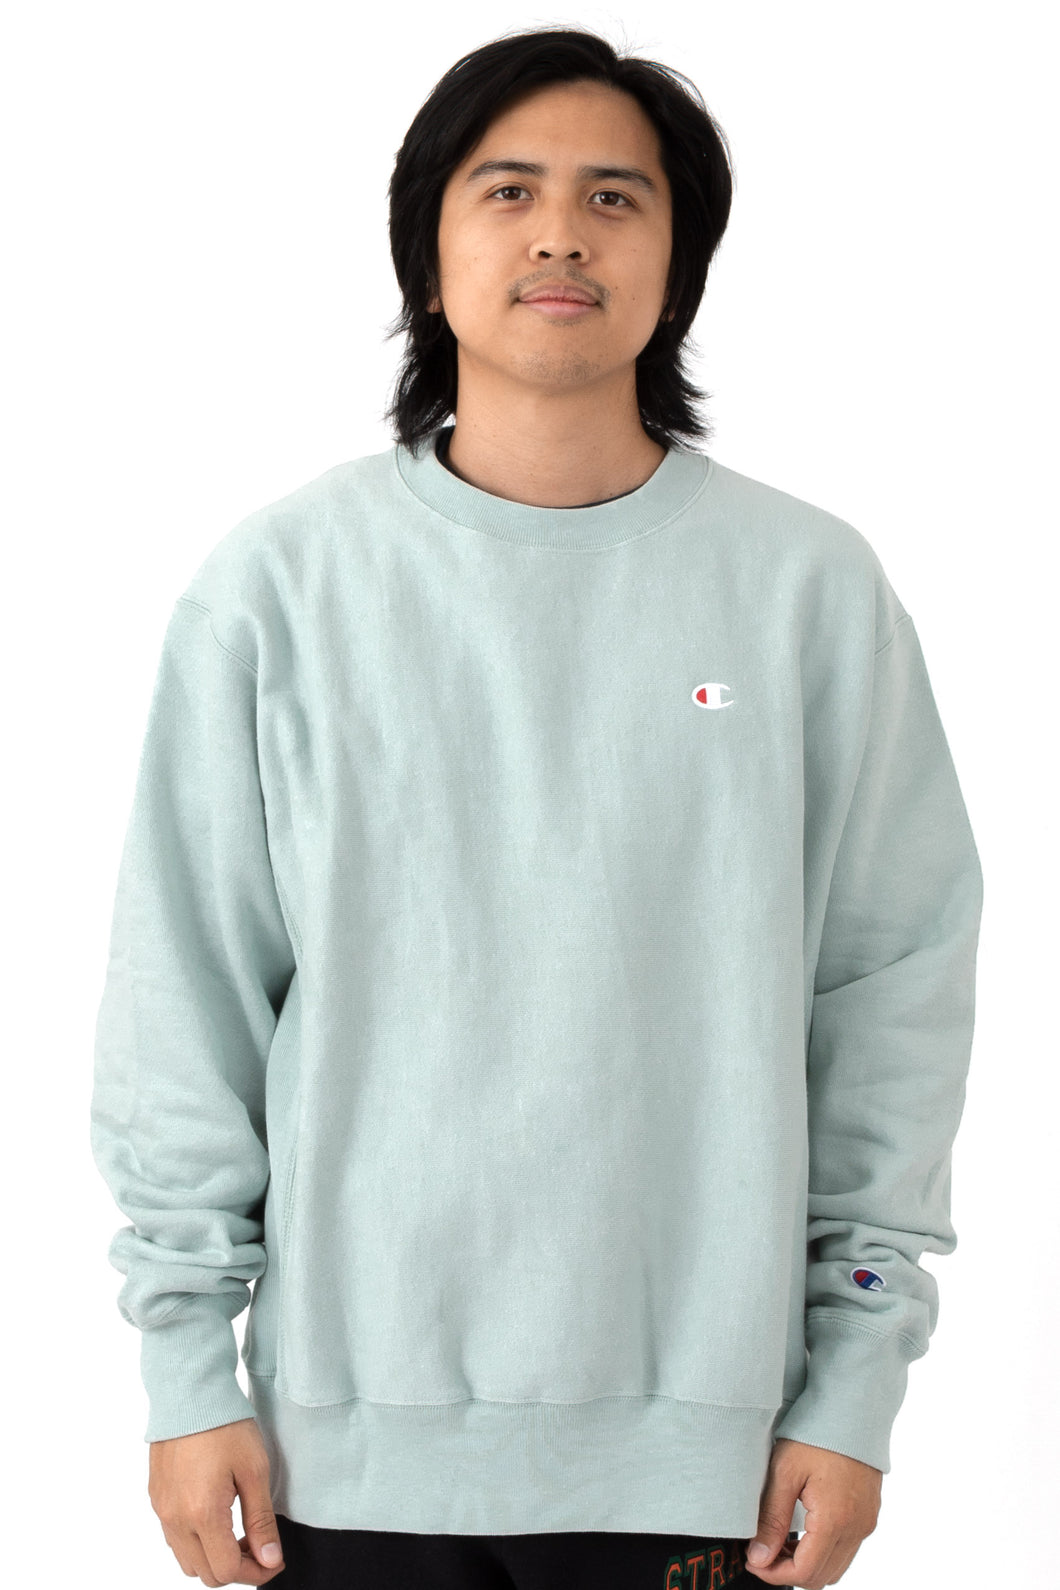 Champion Reverse Weave Crewneck (Fleeting Green)(onhand)(american size)